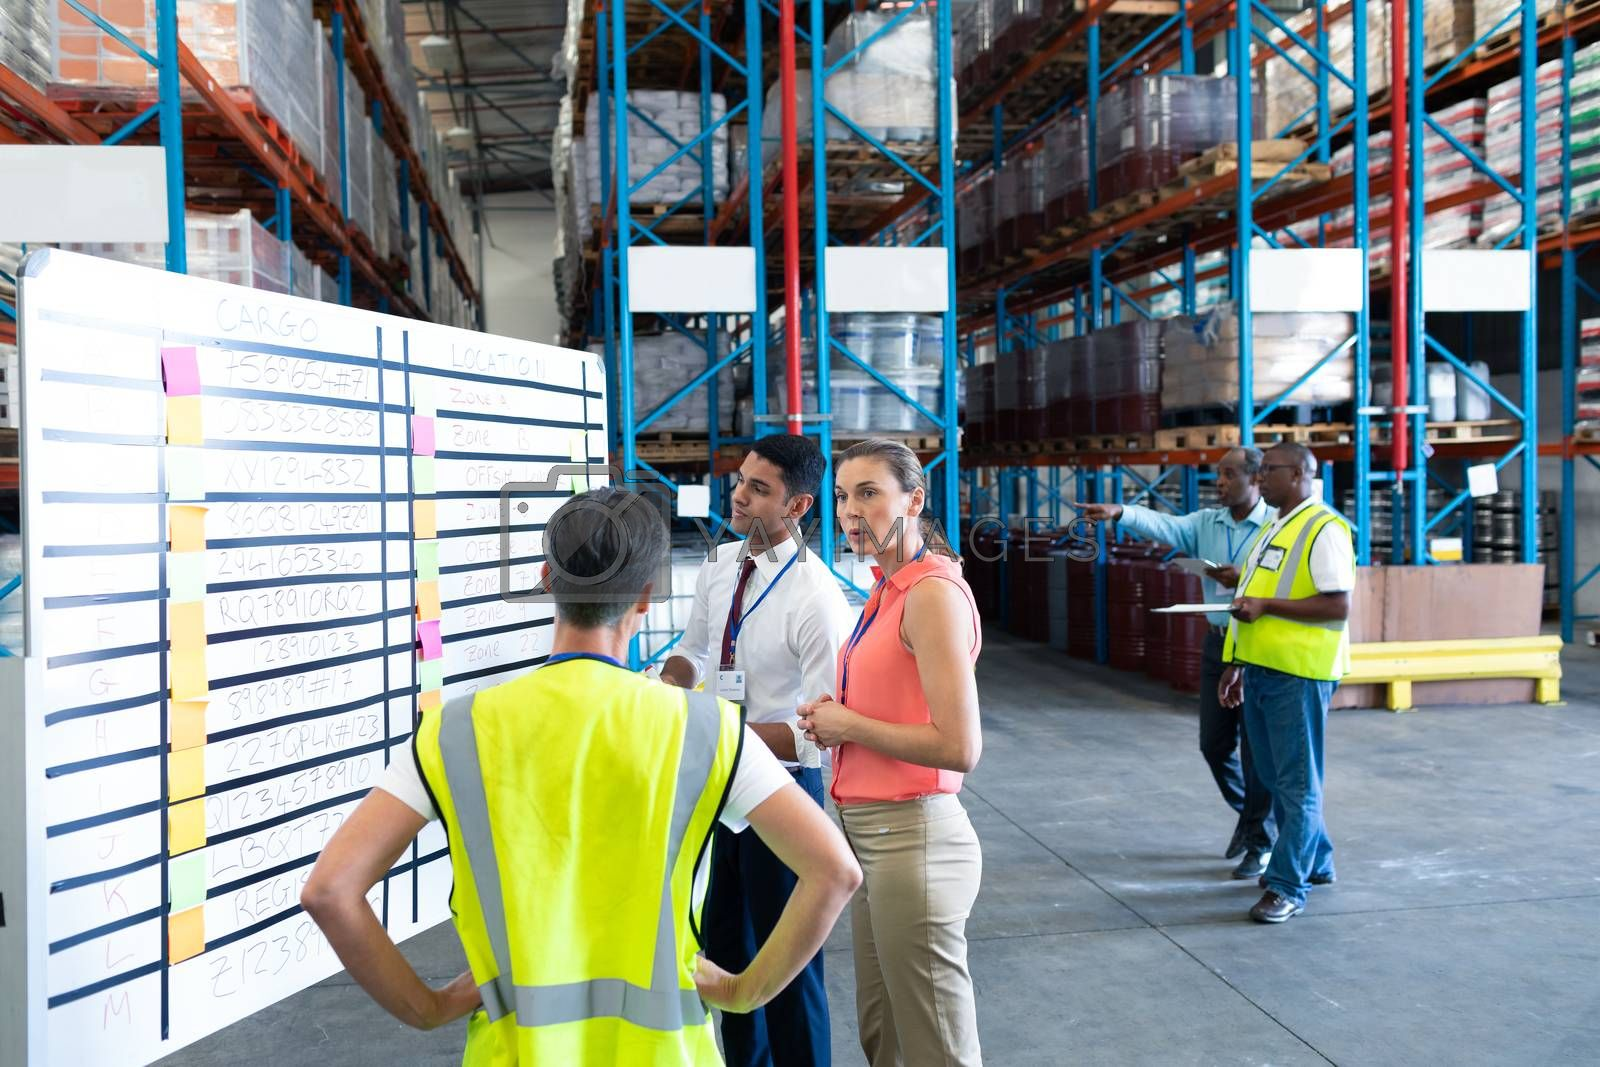 Front view of diverse warehouse staffs interacting with each other in warehouse. This is a freight transportation and distribution warehouse. Industrial and industrial workers concept